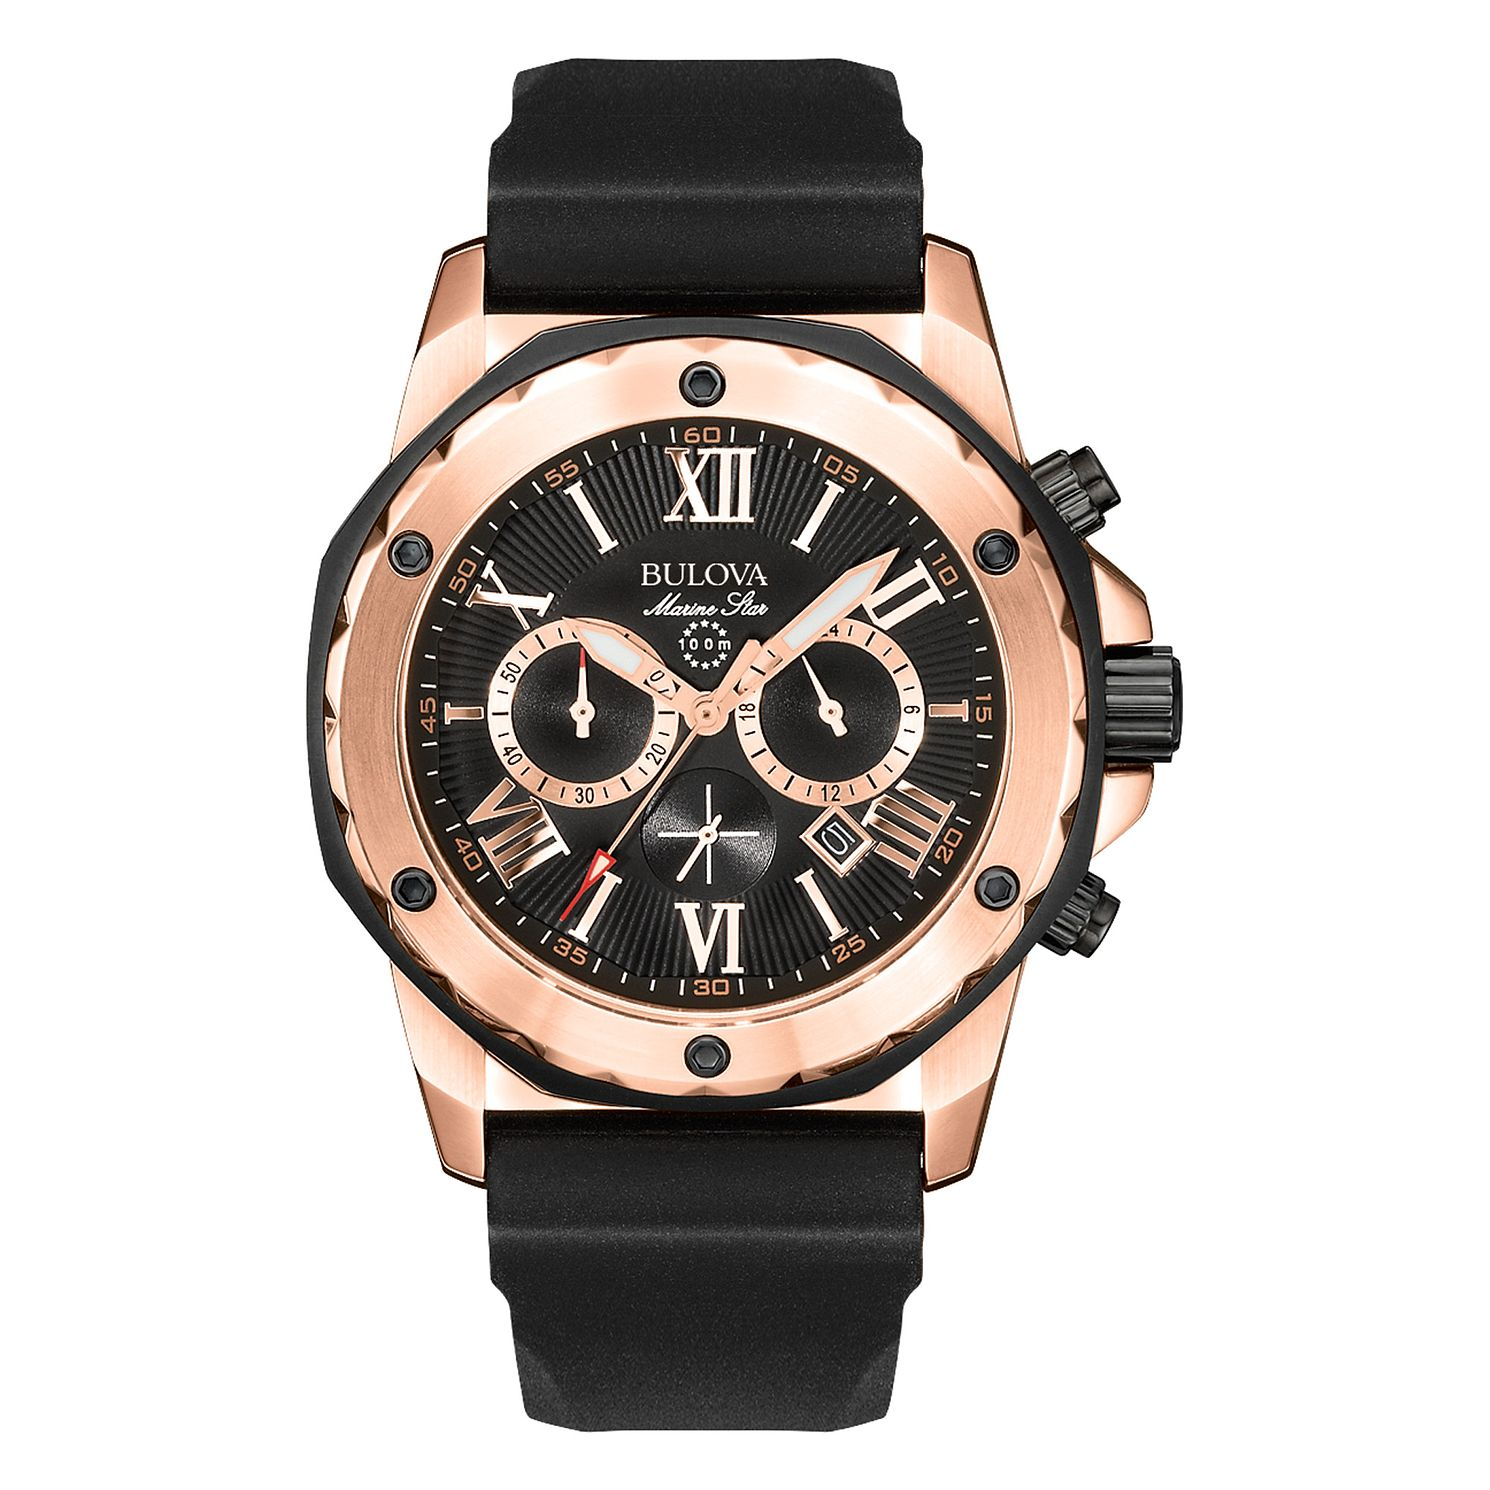 Bulova Men's Marine Star Rose Gold Plated Black Strap Watch - Product number 1013076